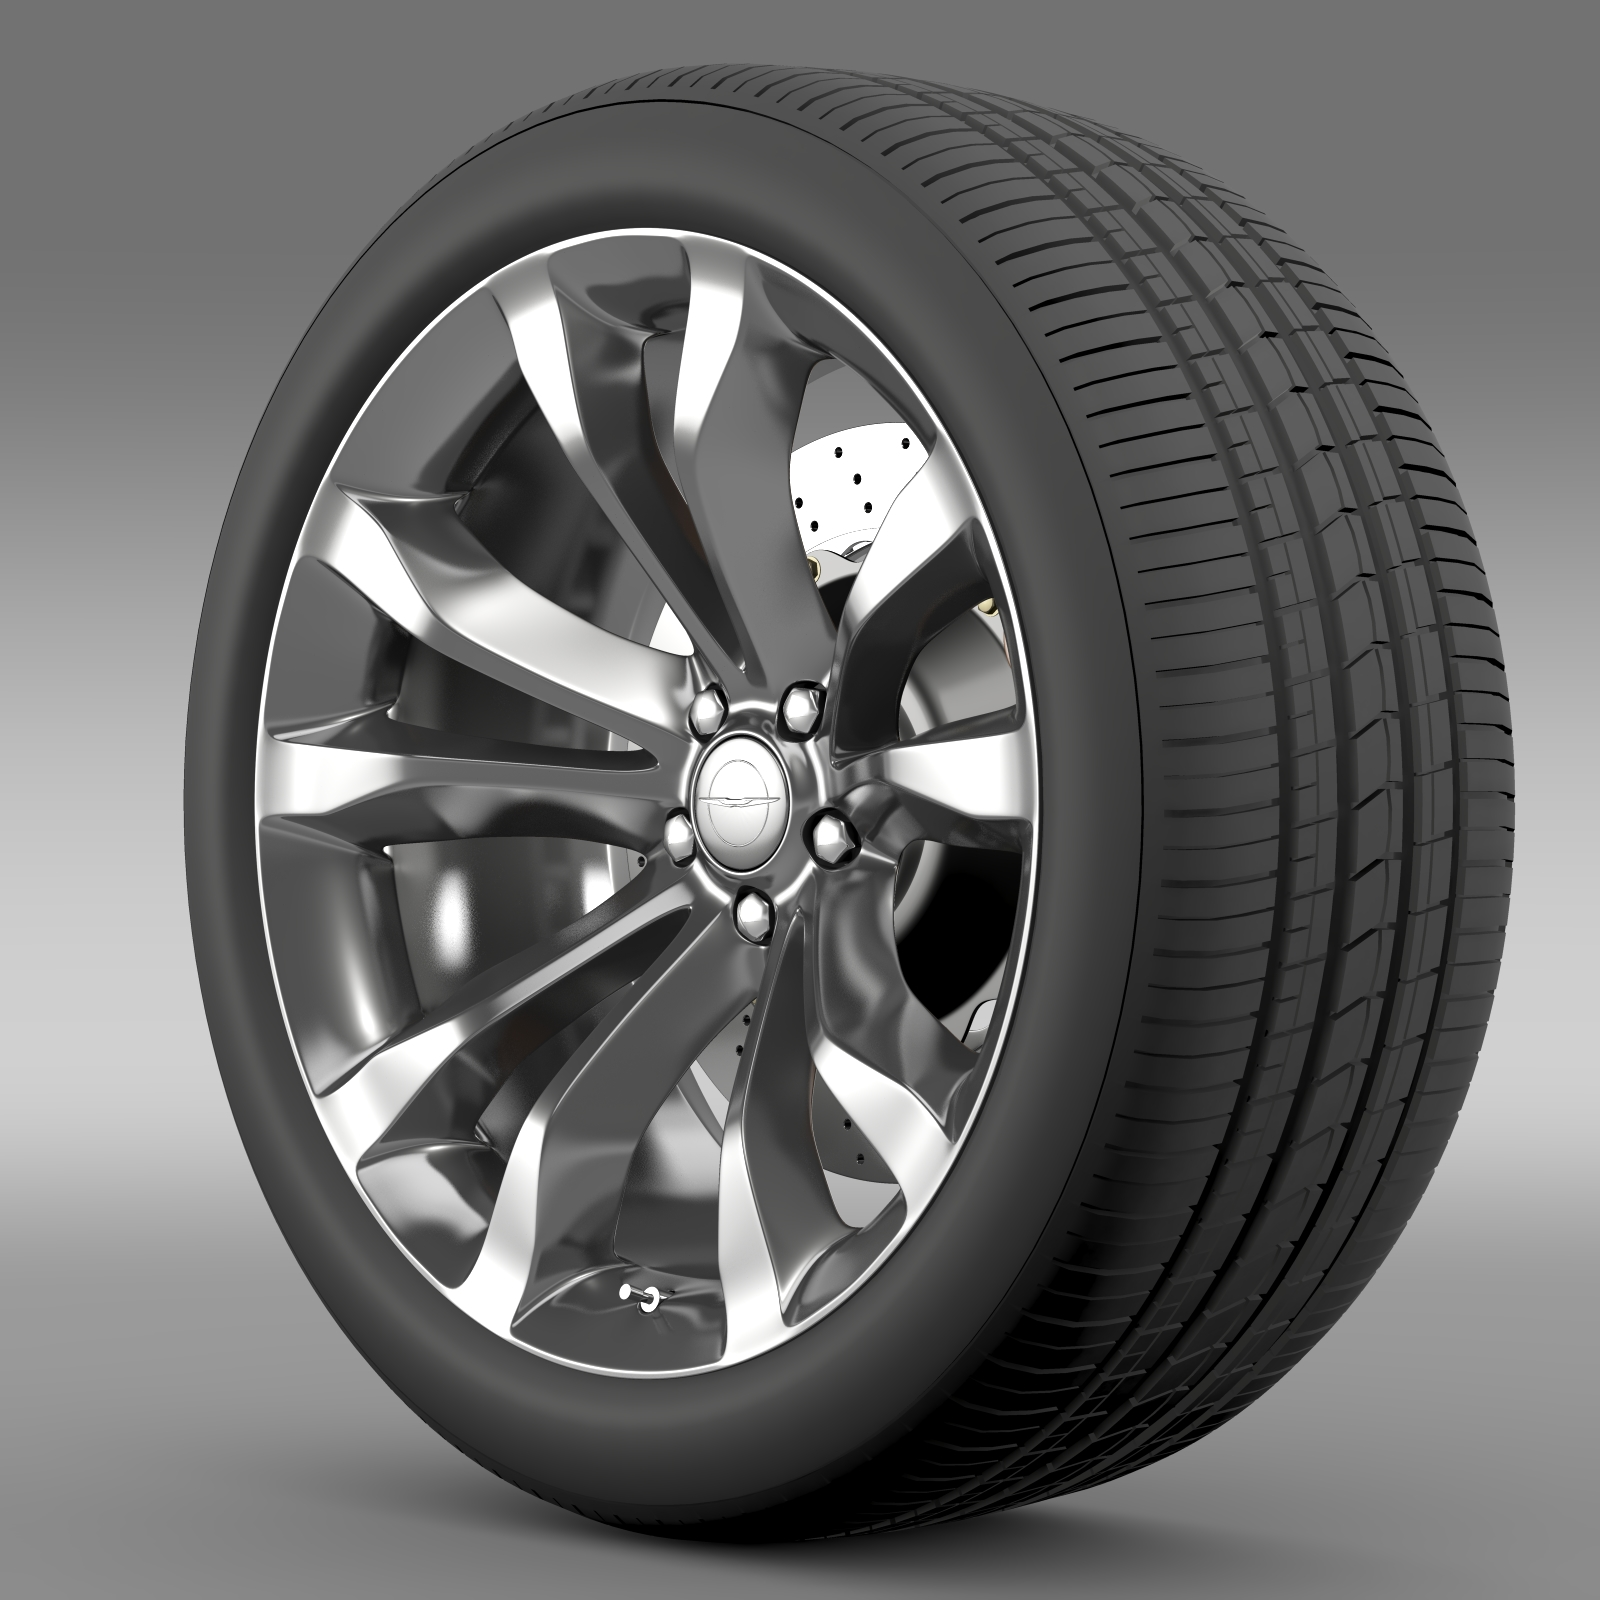 chrysler 300c platinum 2015 wheel 3d model 3ds max fbx c4d lwo ma mb hrc xsi obj 212776